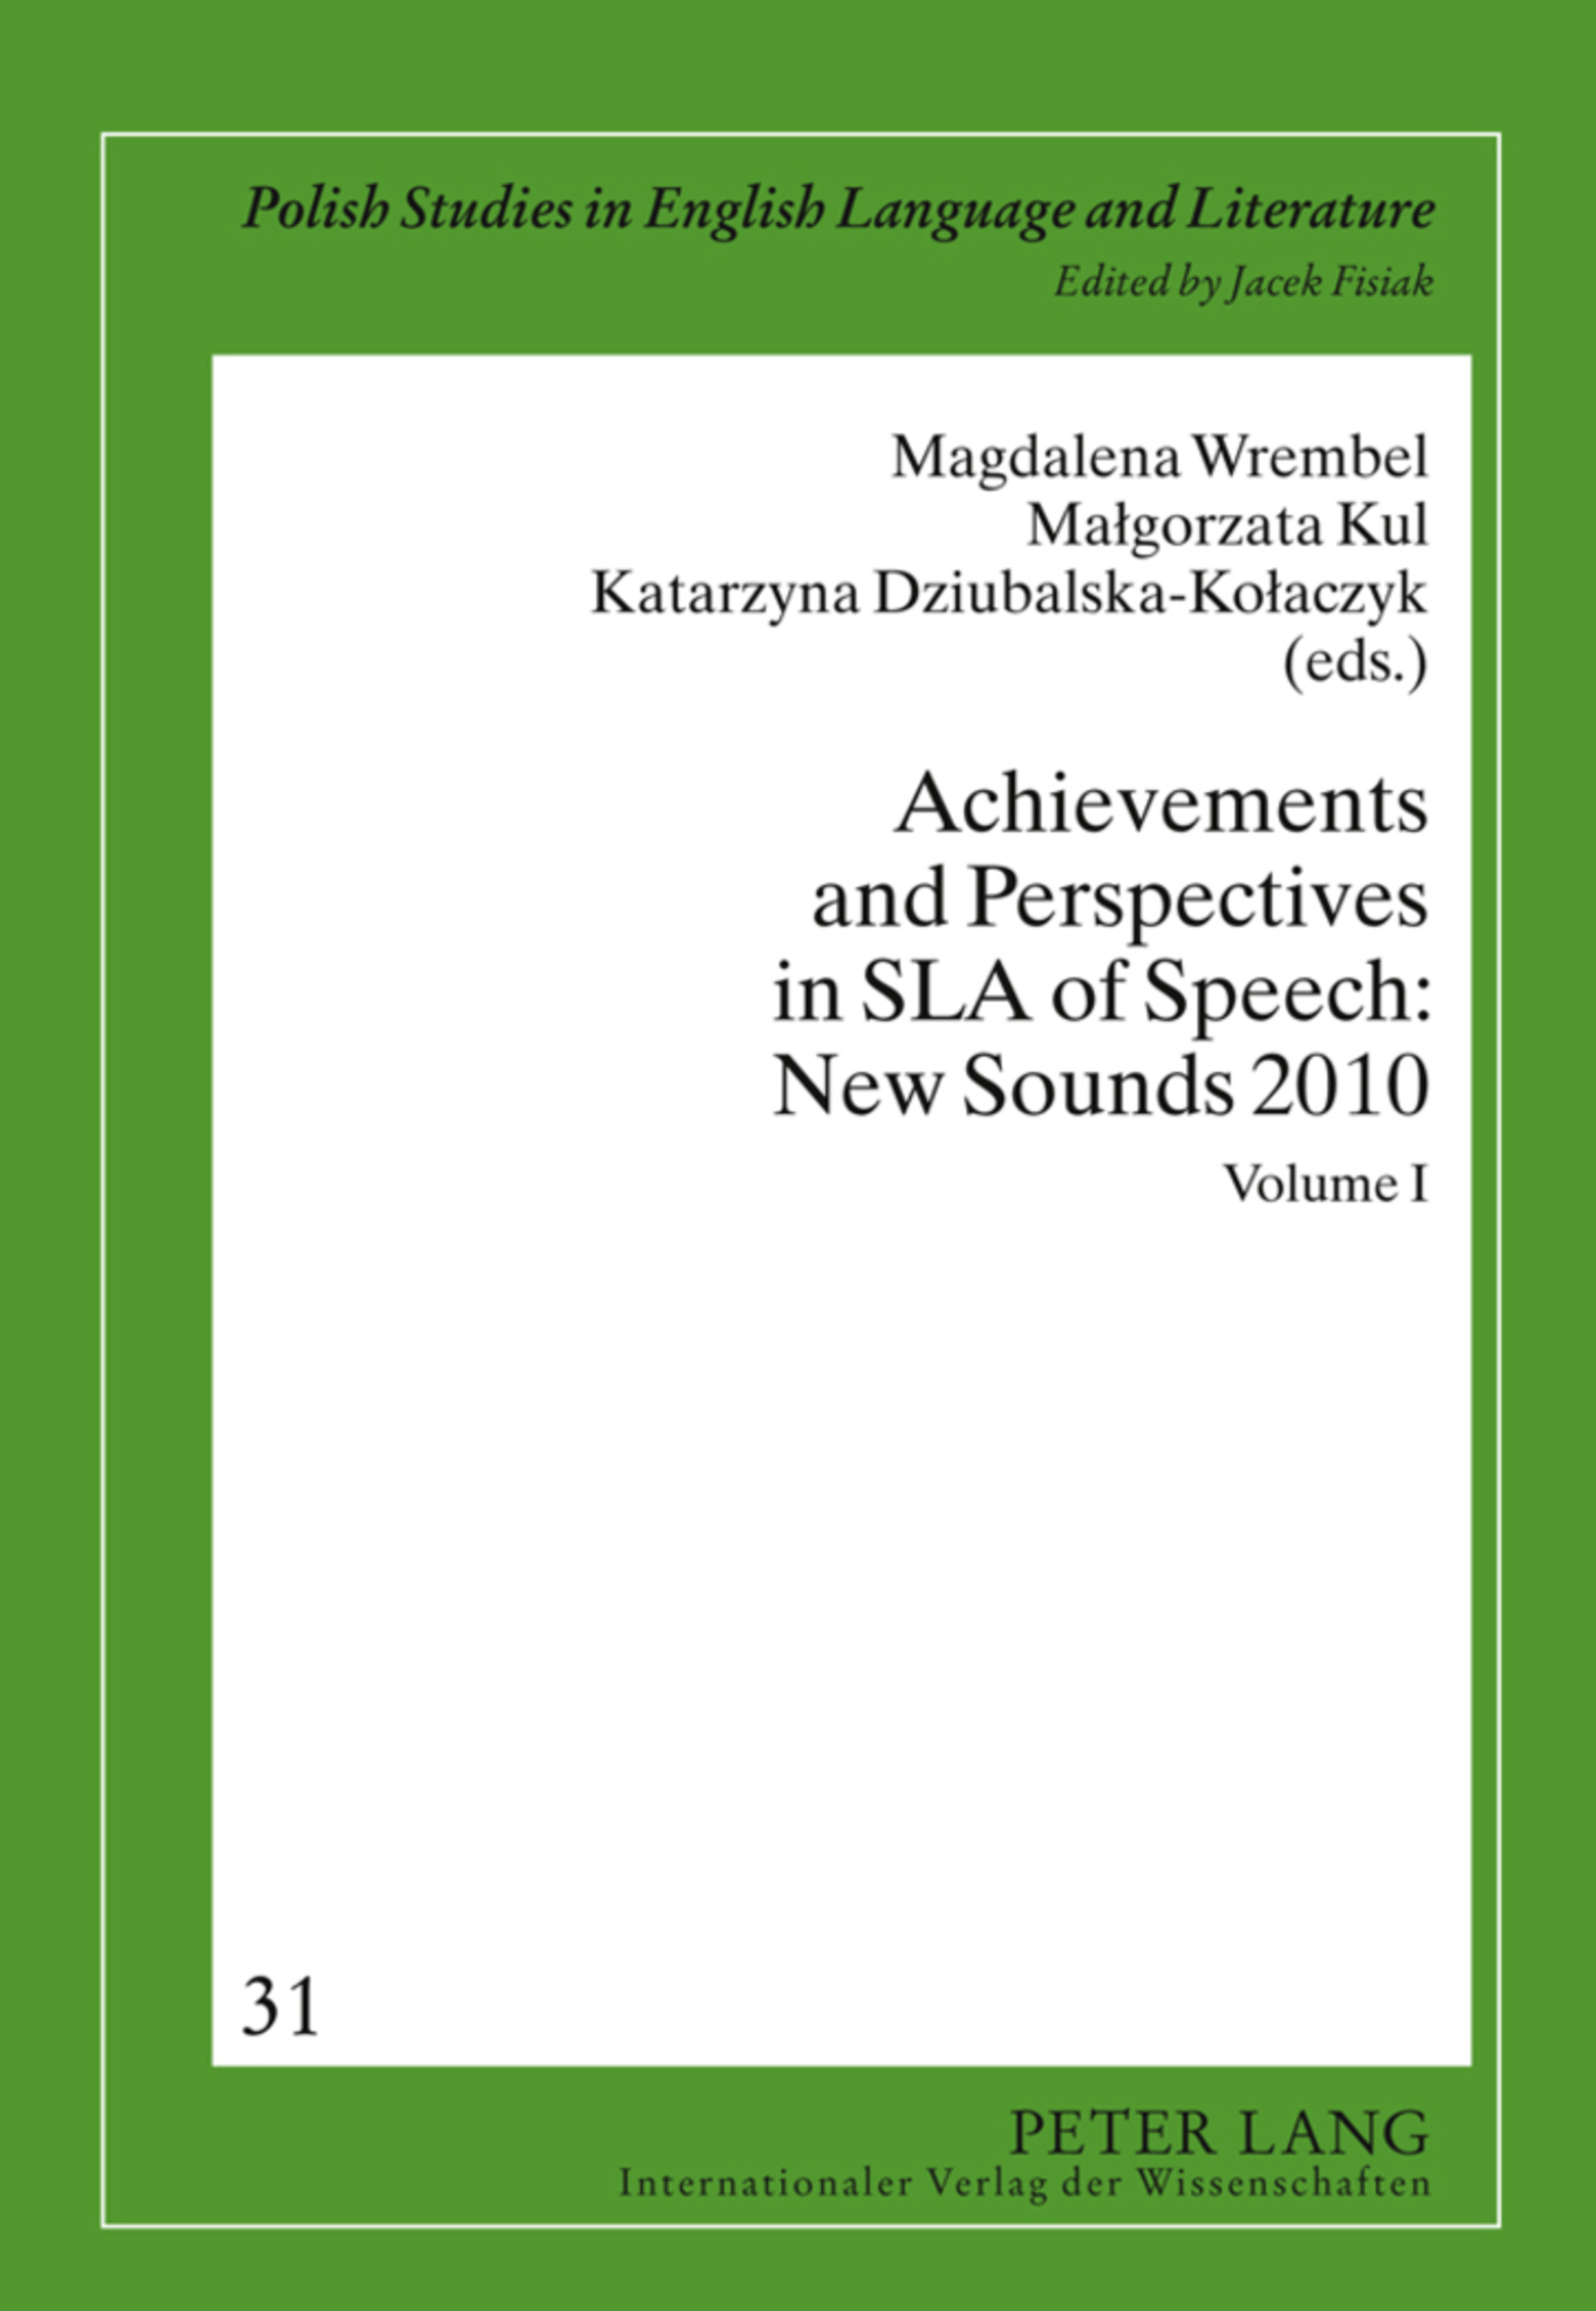 Title: Achievements and Perspectives in SLA of Speech: New Sounds 2010